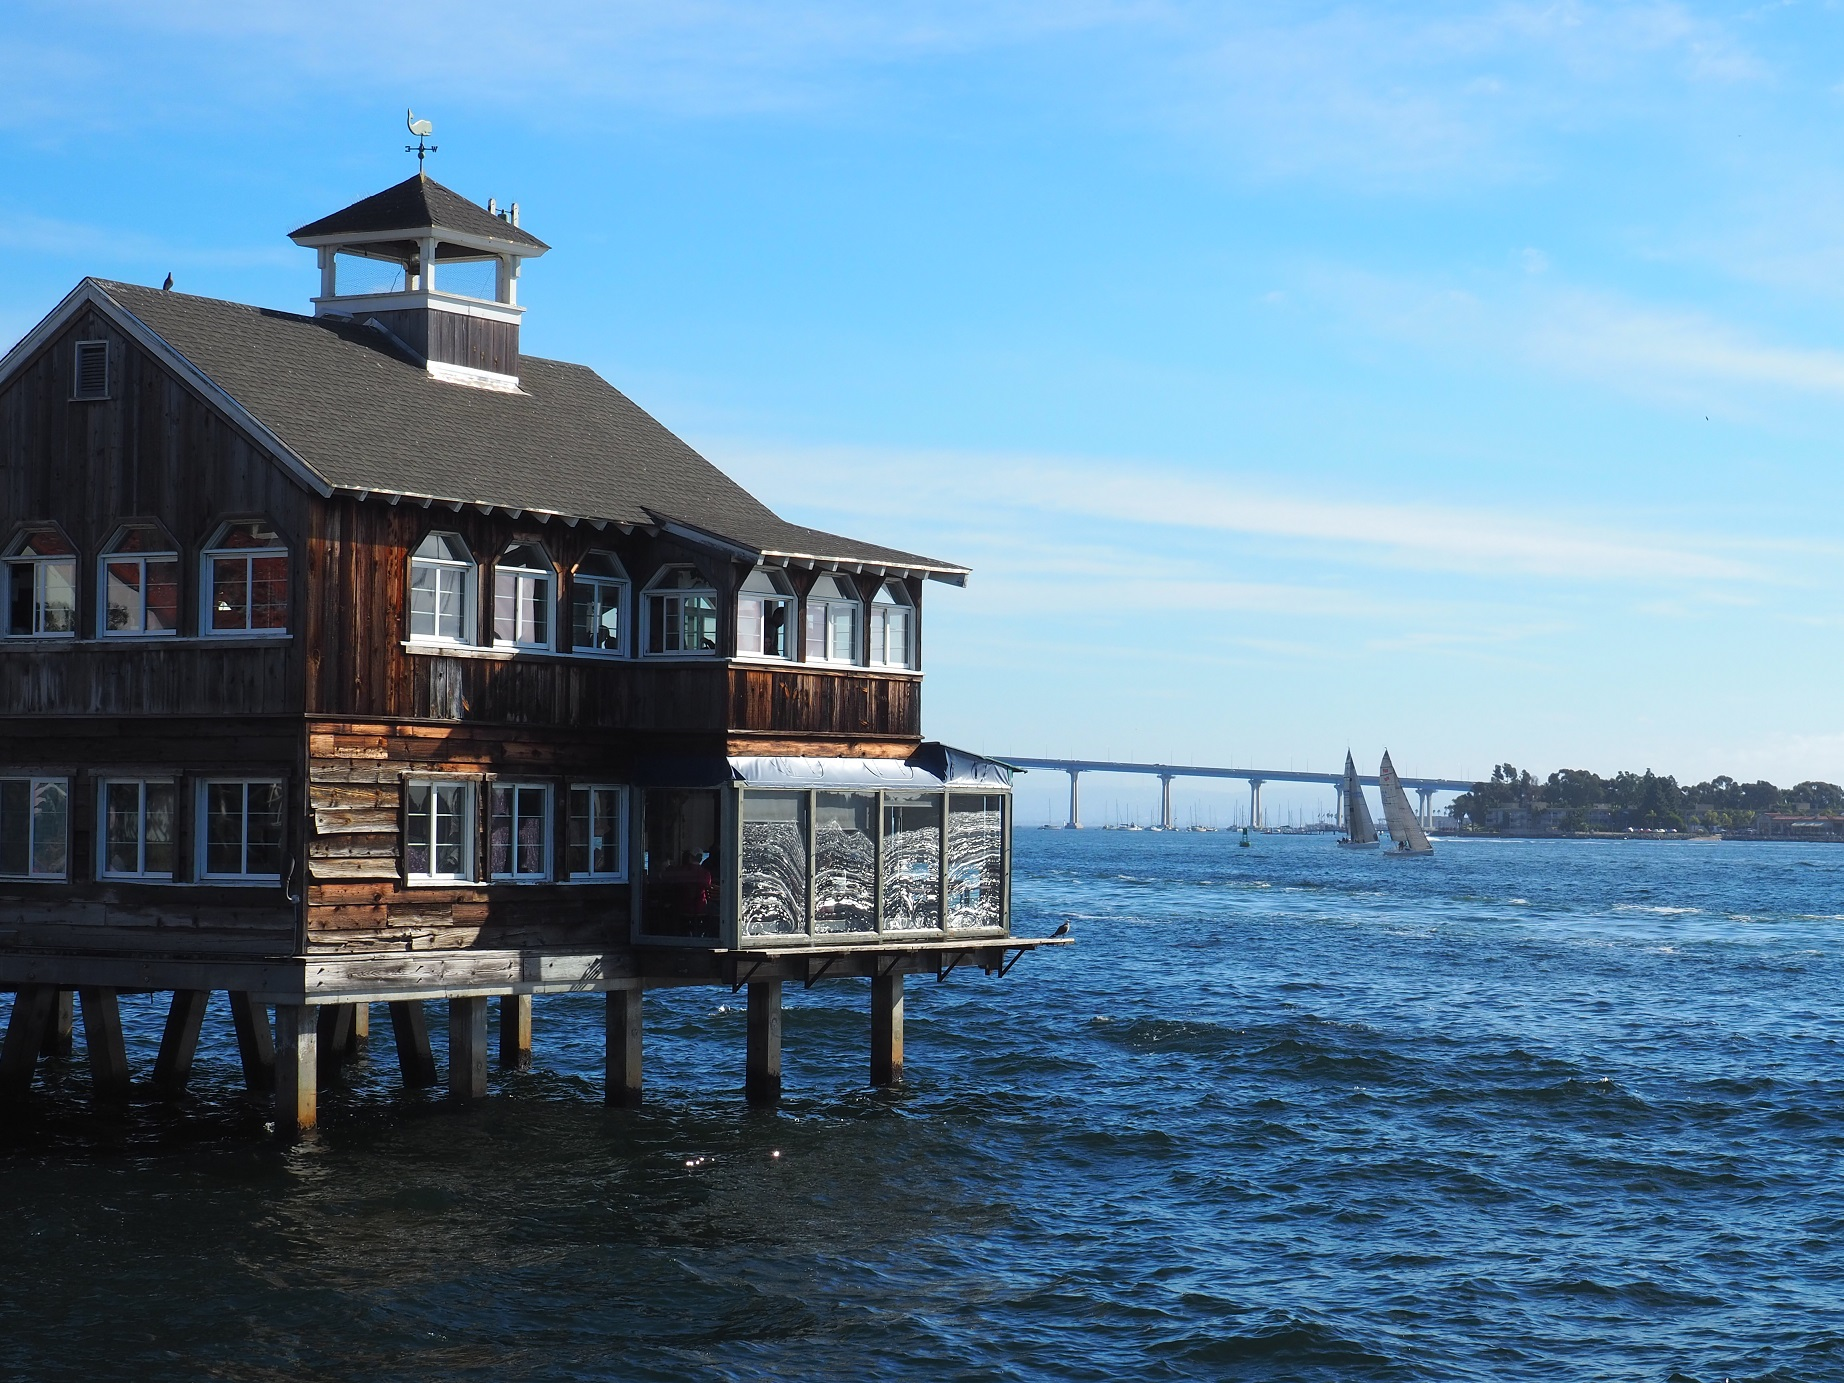 Seaport Village à San Diego